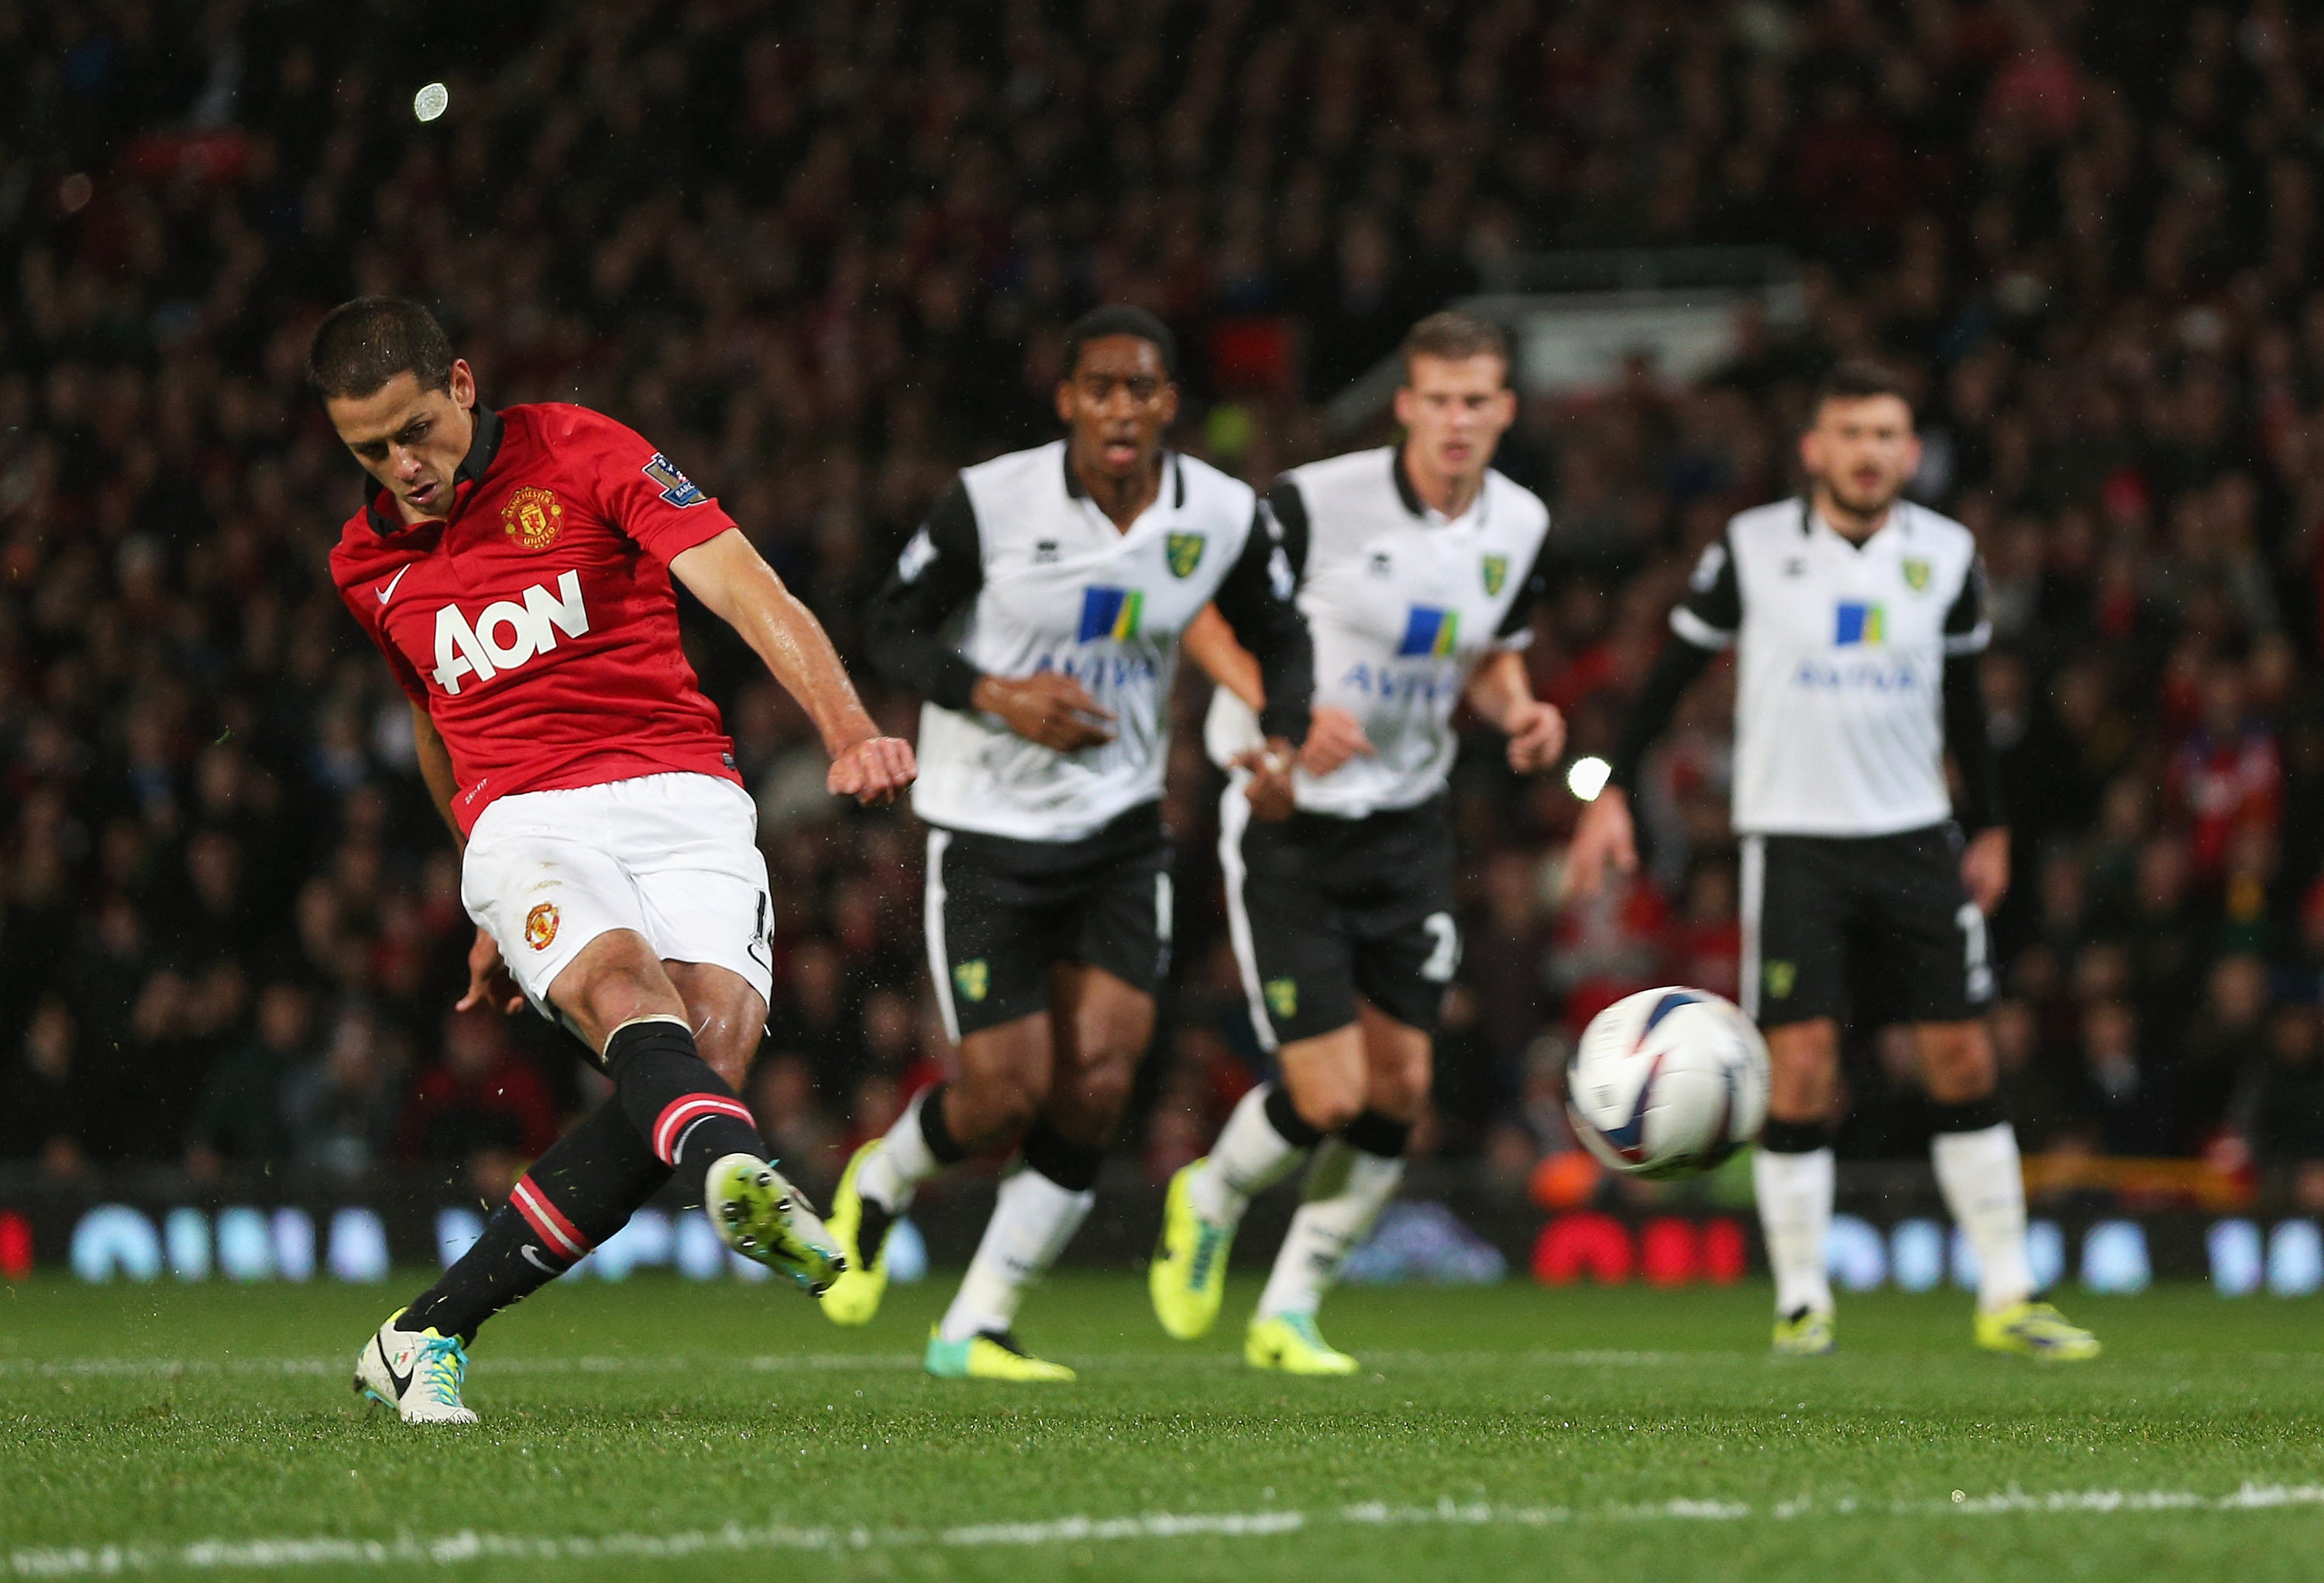 Manchester United 4-0 Norwich City - Five talking points